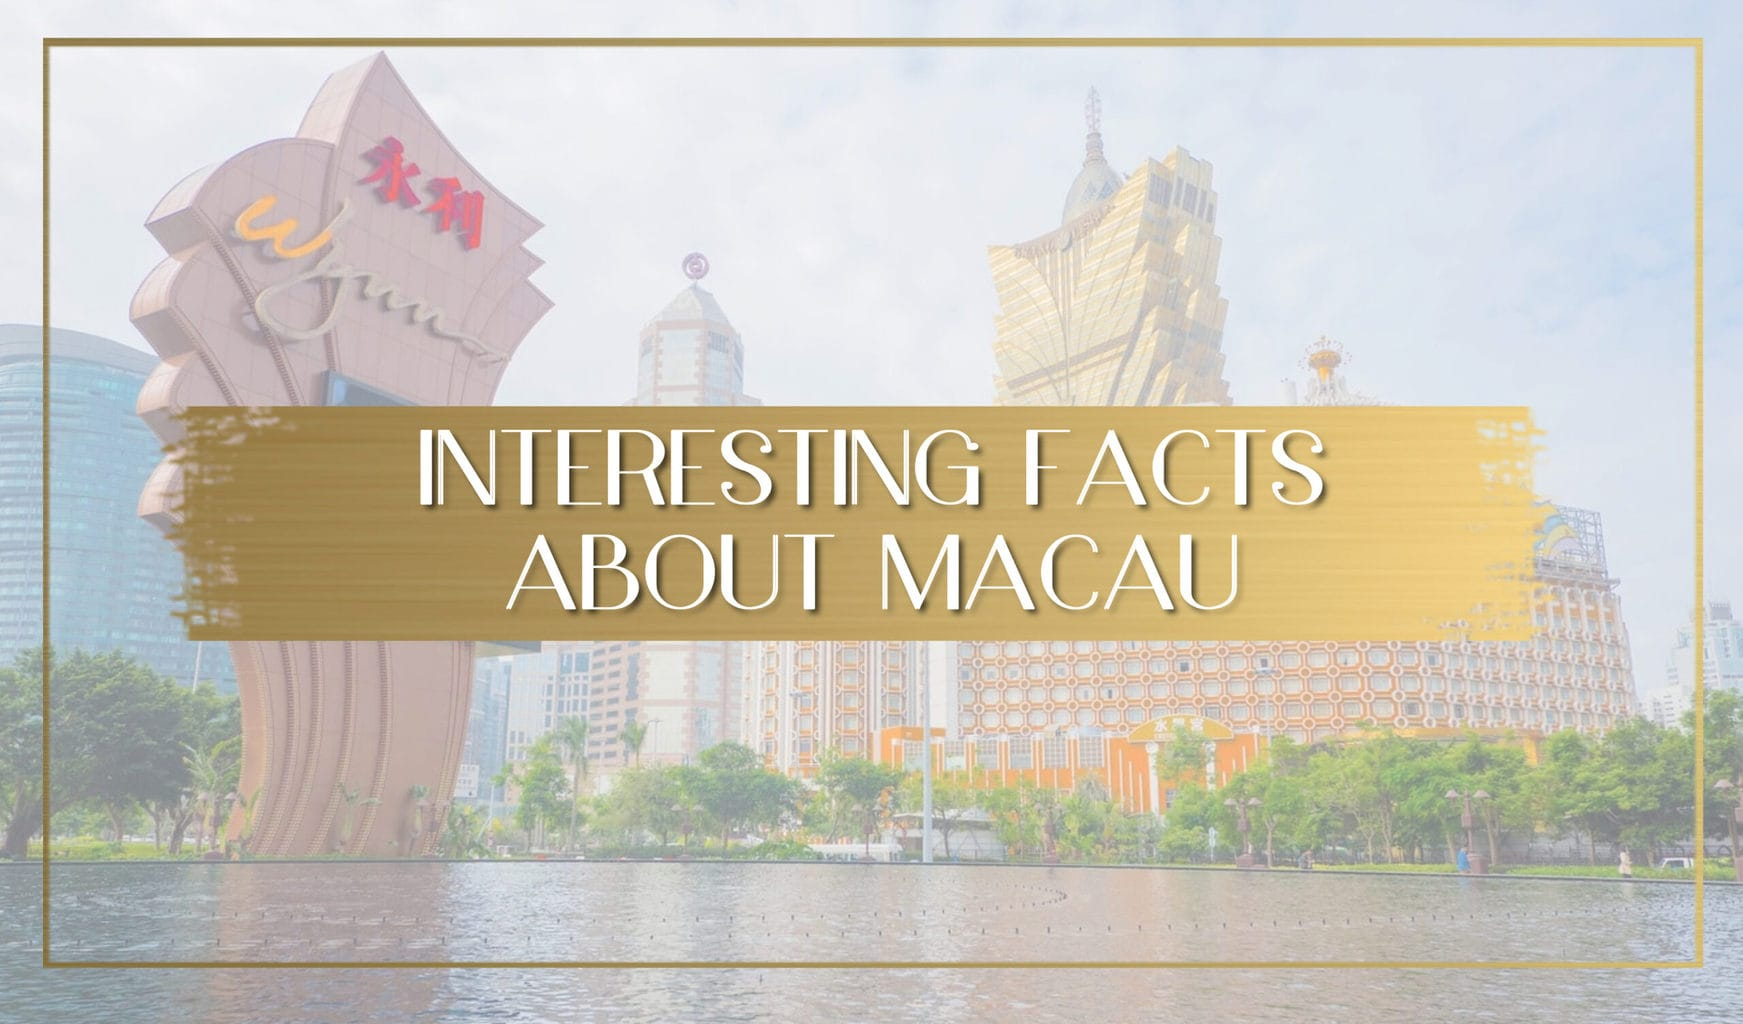 Facts about Macau main